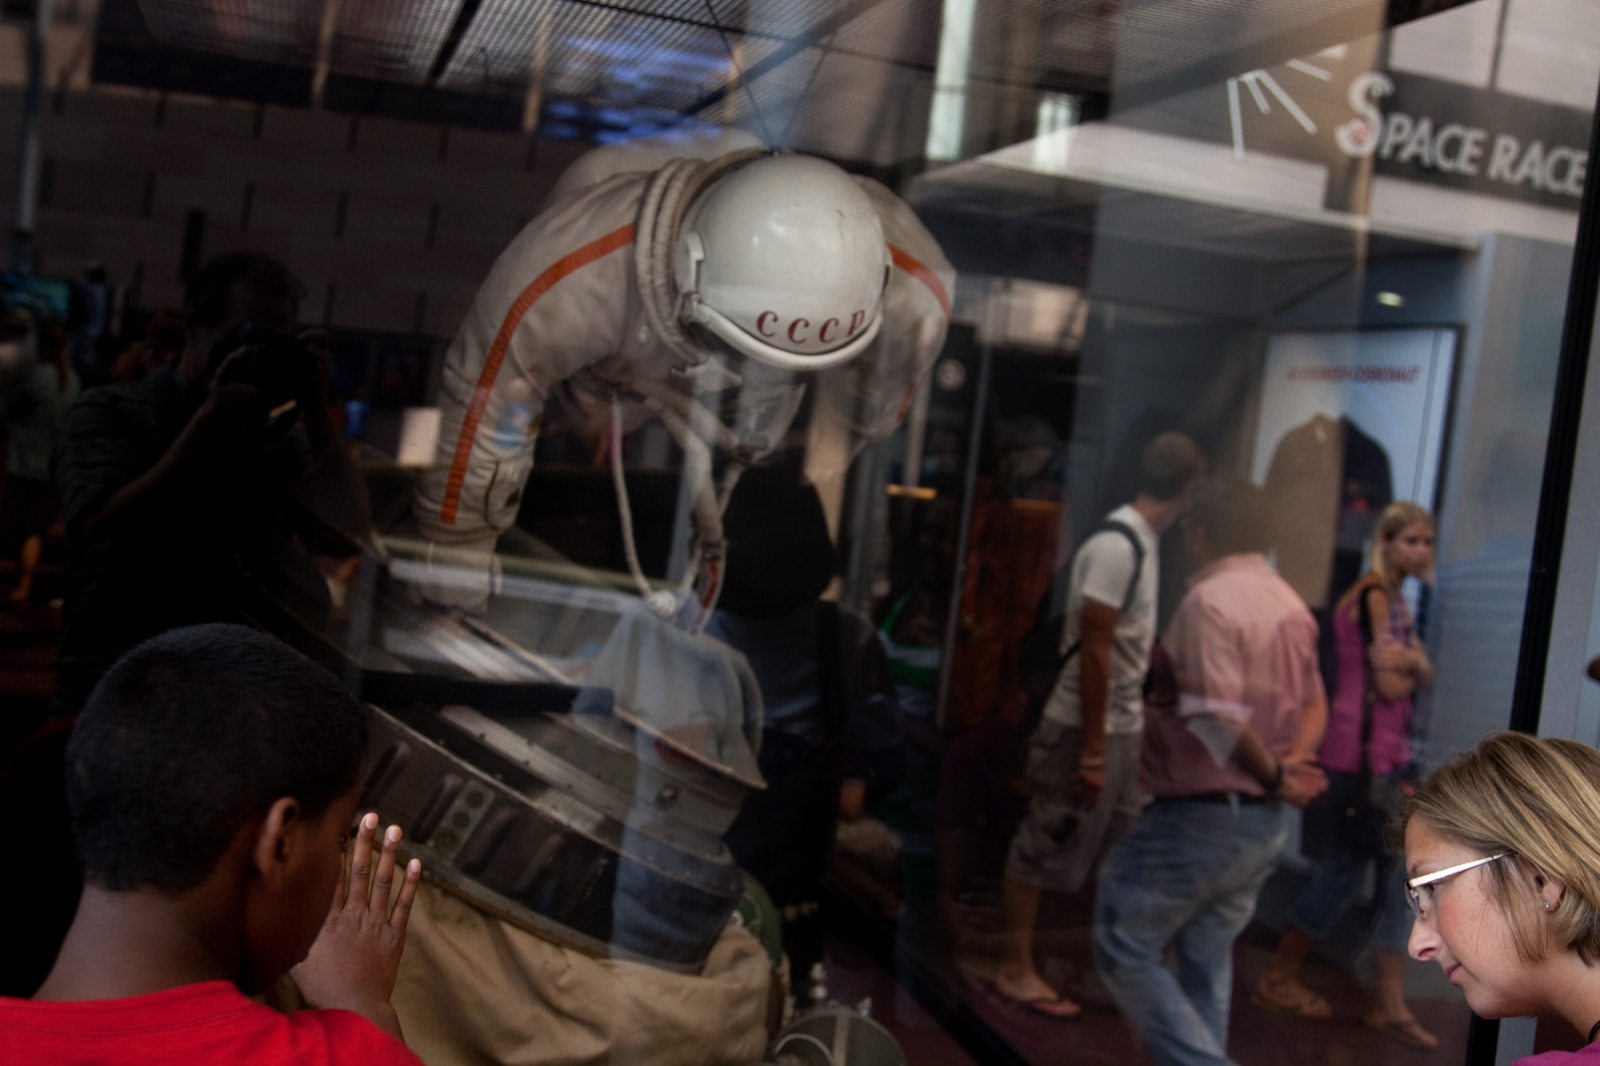 Visitors look at a space suit worn by Soviet cosmonauts.